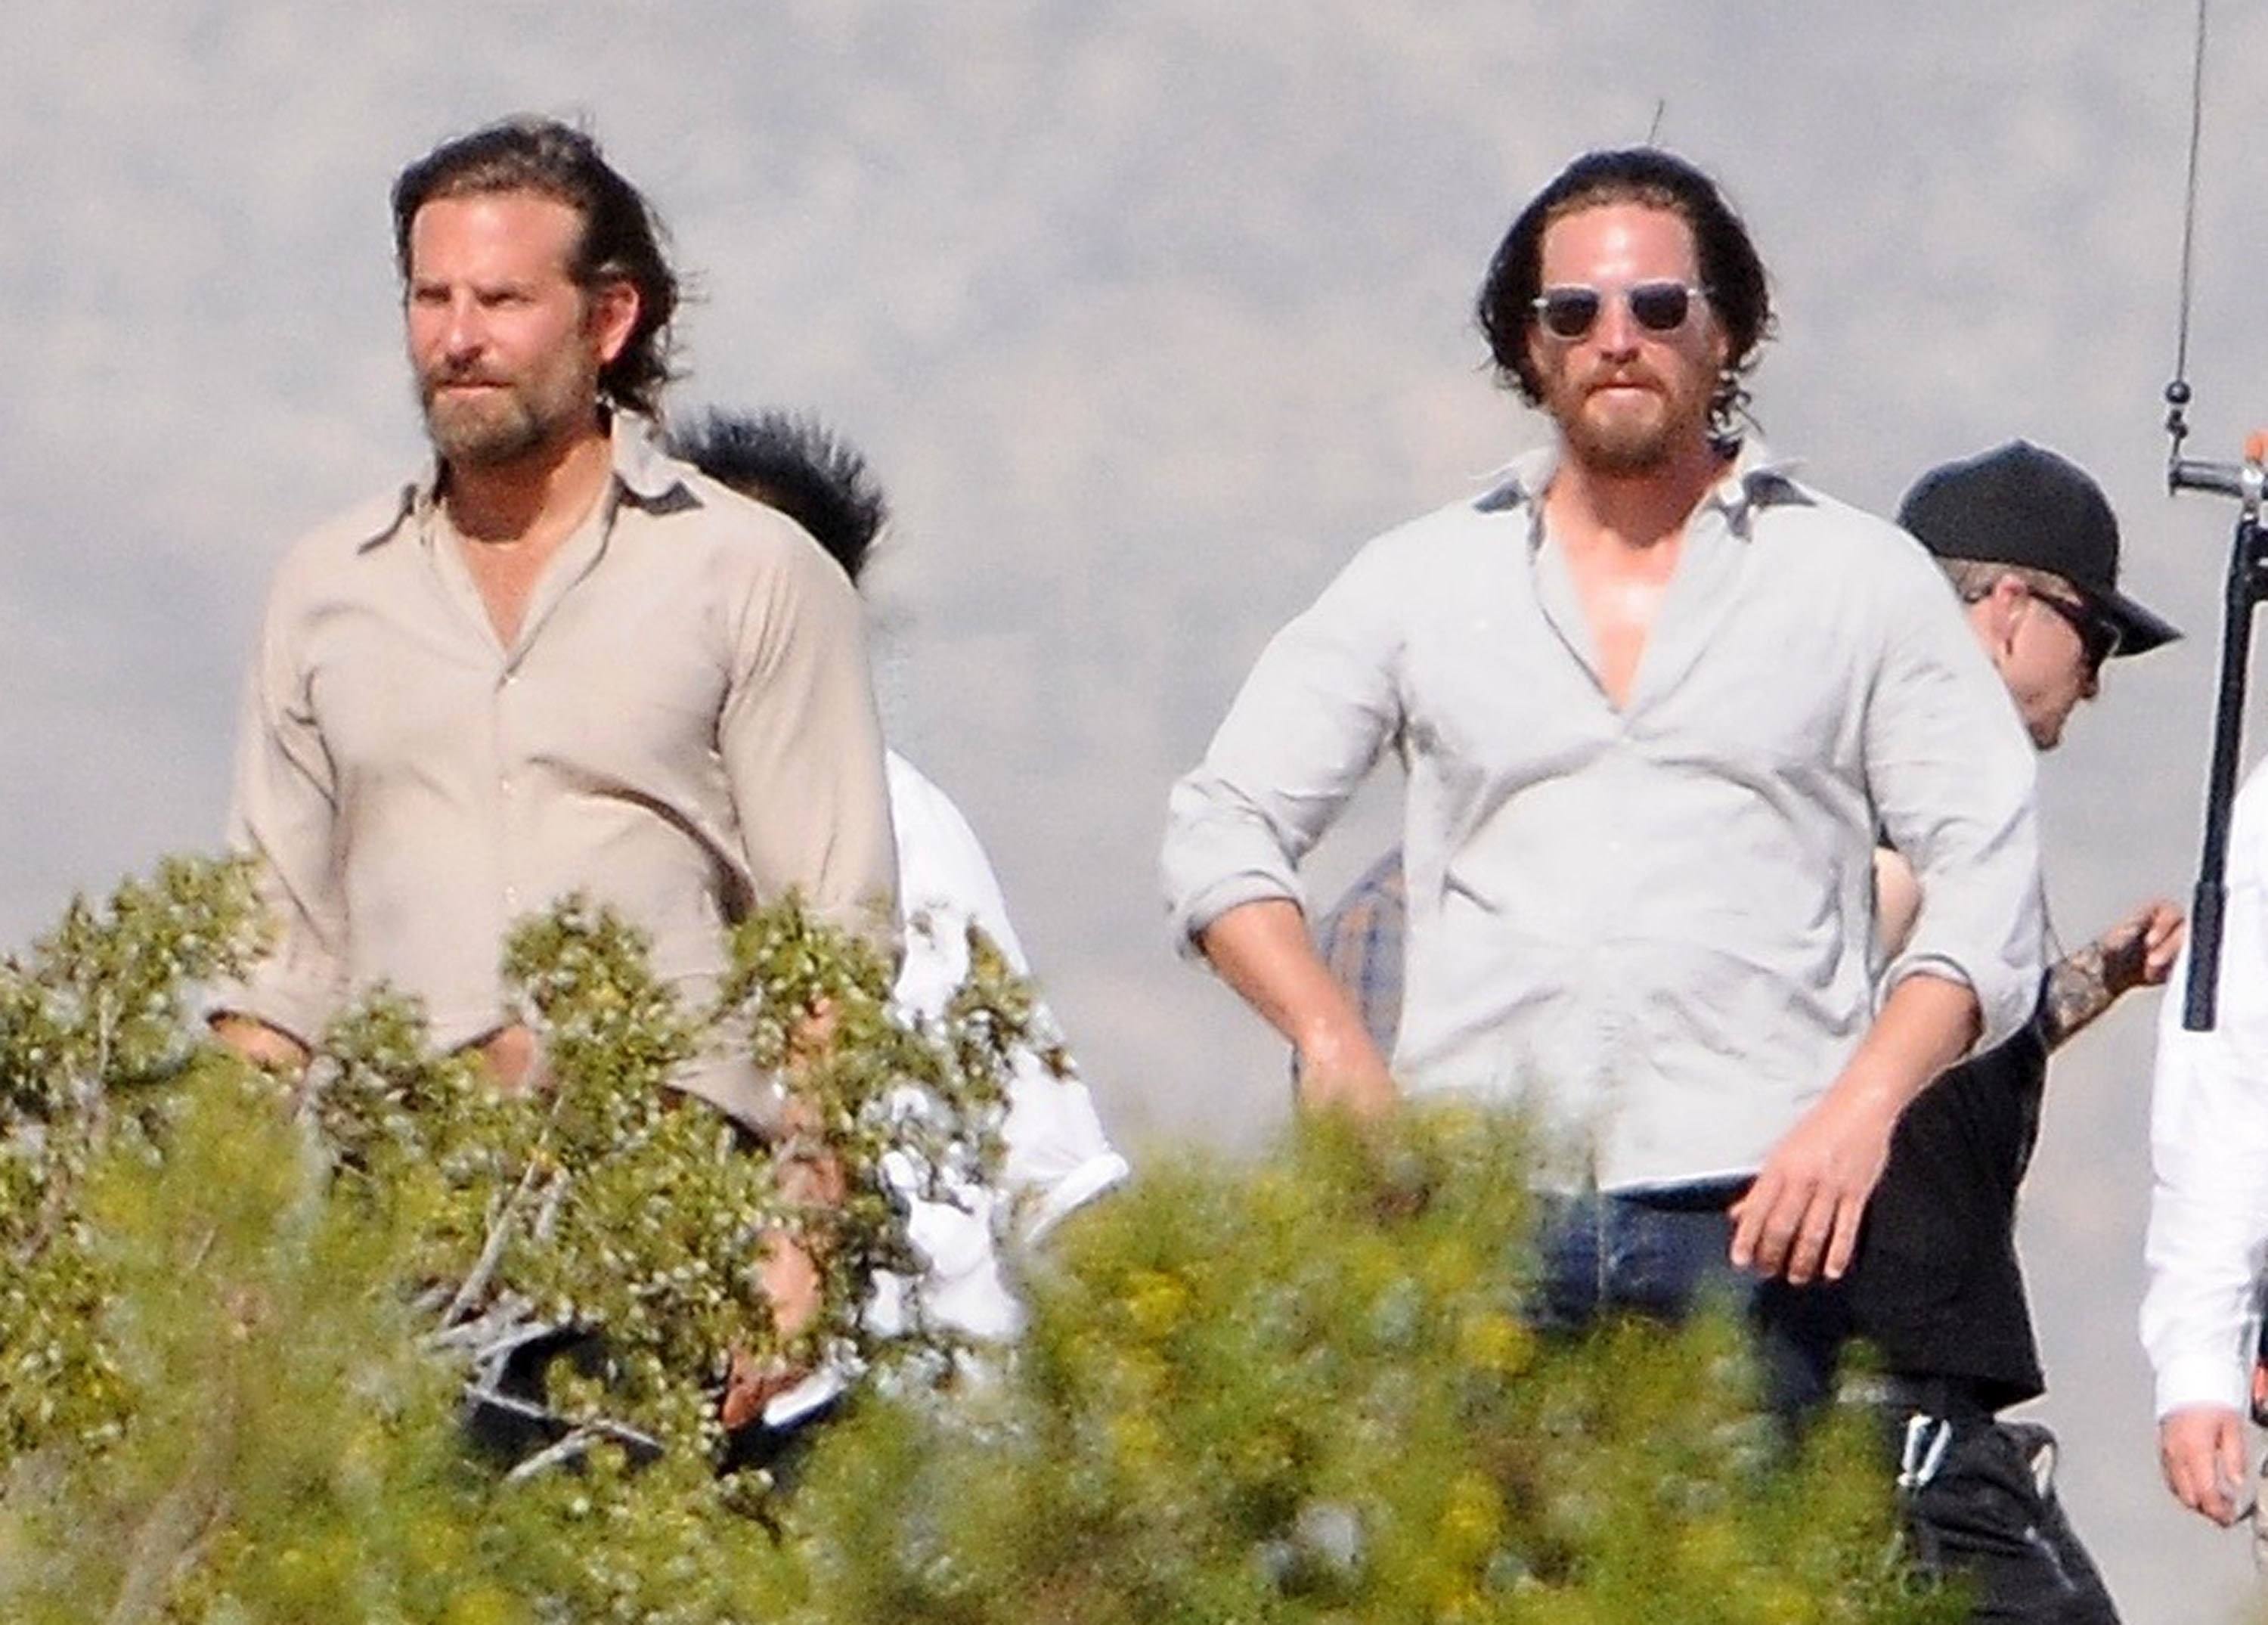 Bradley Cooper and his stunt double walking outside while filming